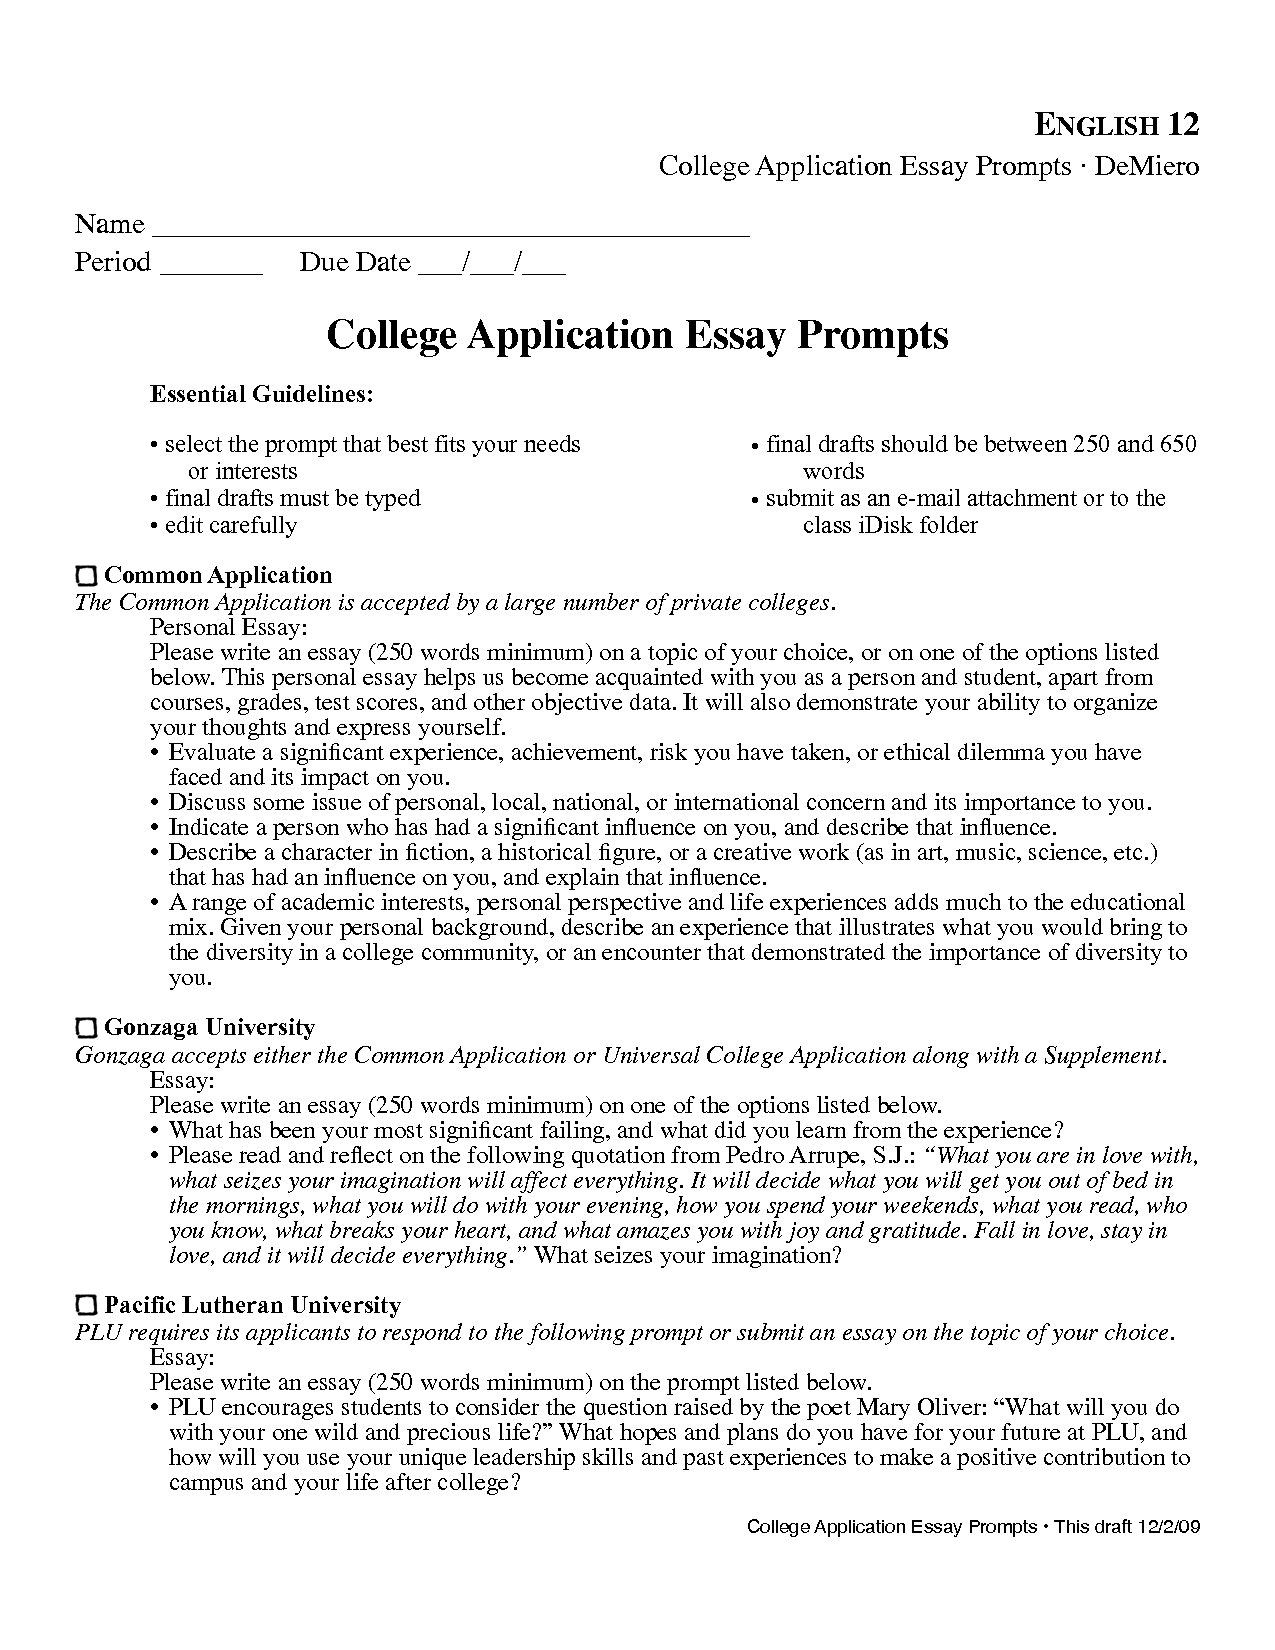 essay topic college essay prompts collegeessayprompts4u com